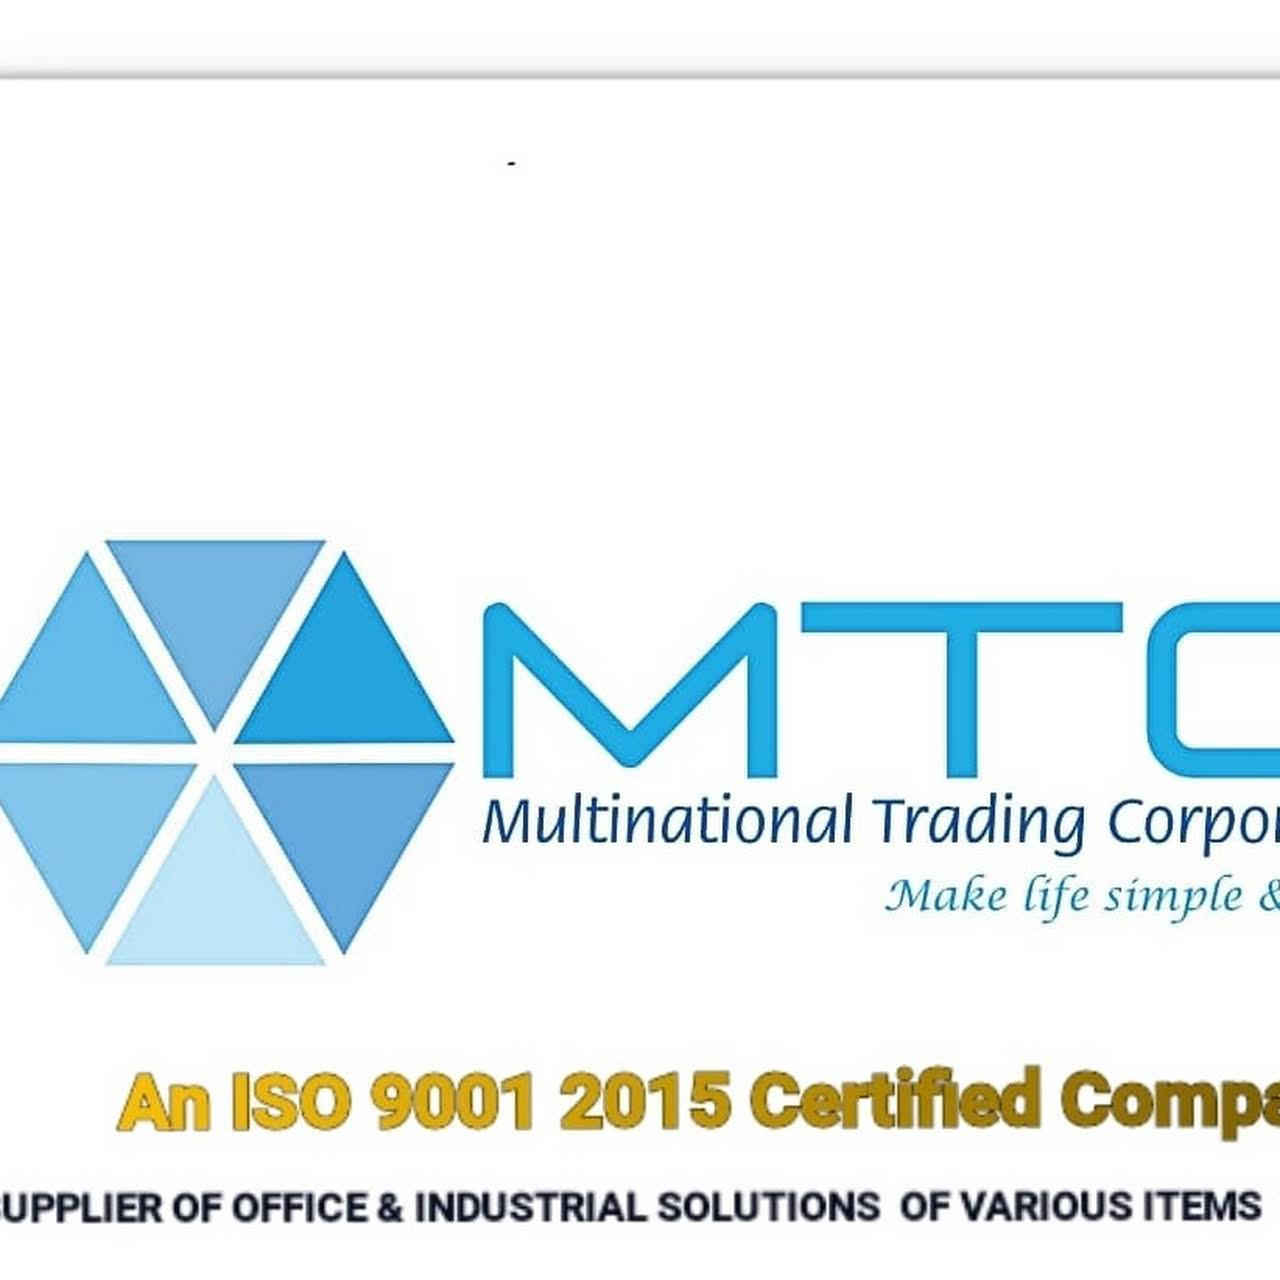 Multinational Trading Corporation - computerized embroidery